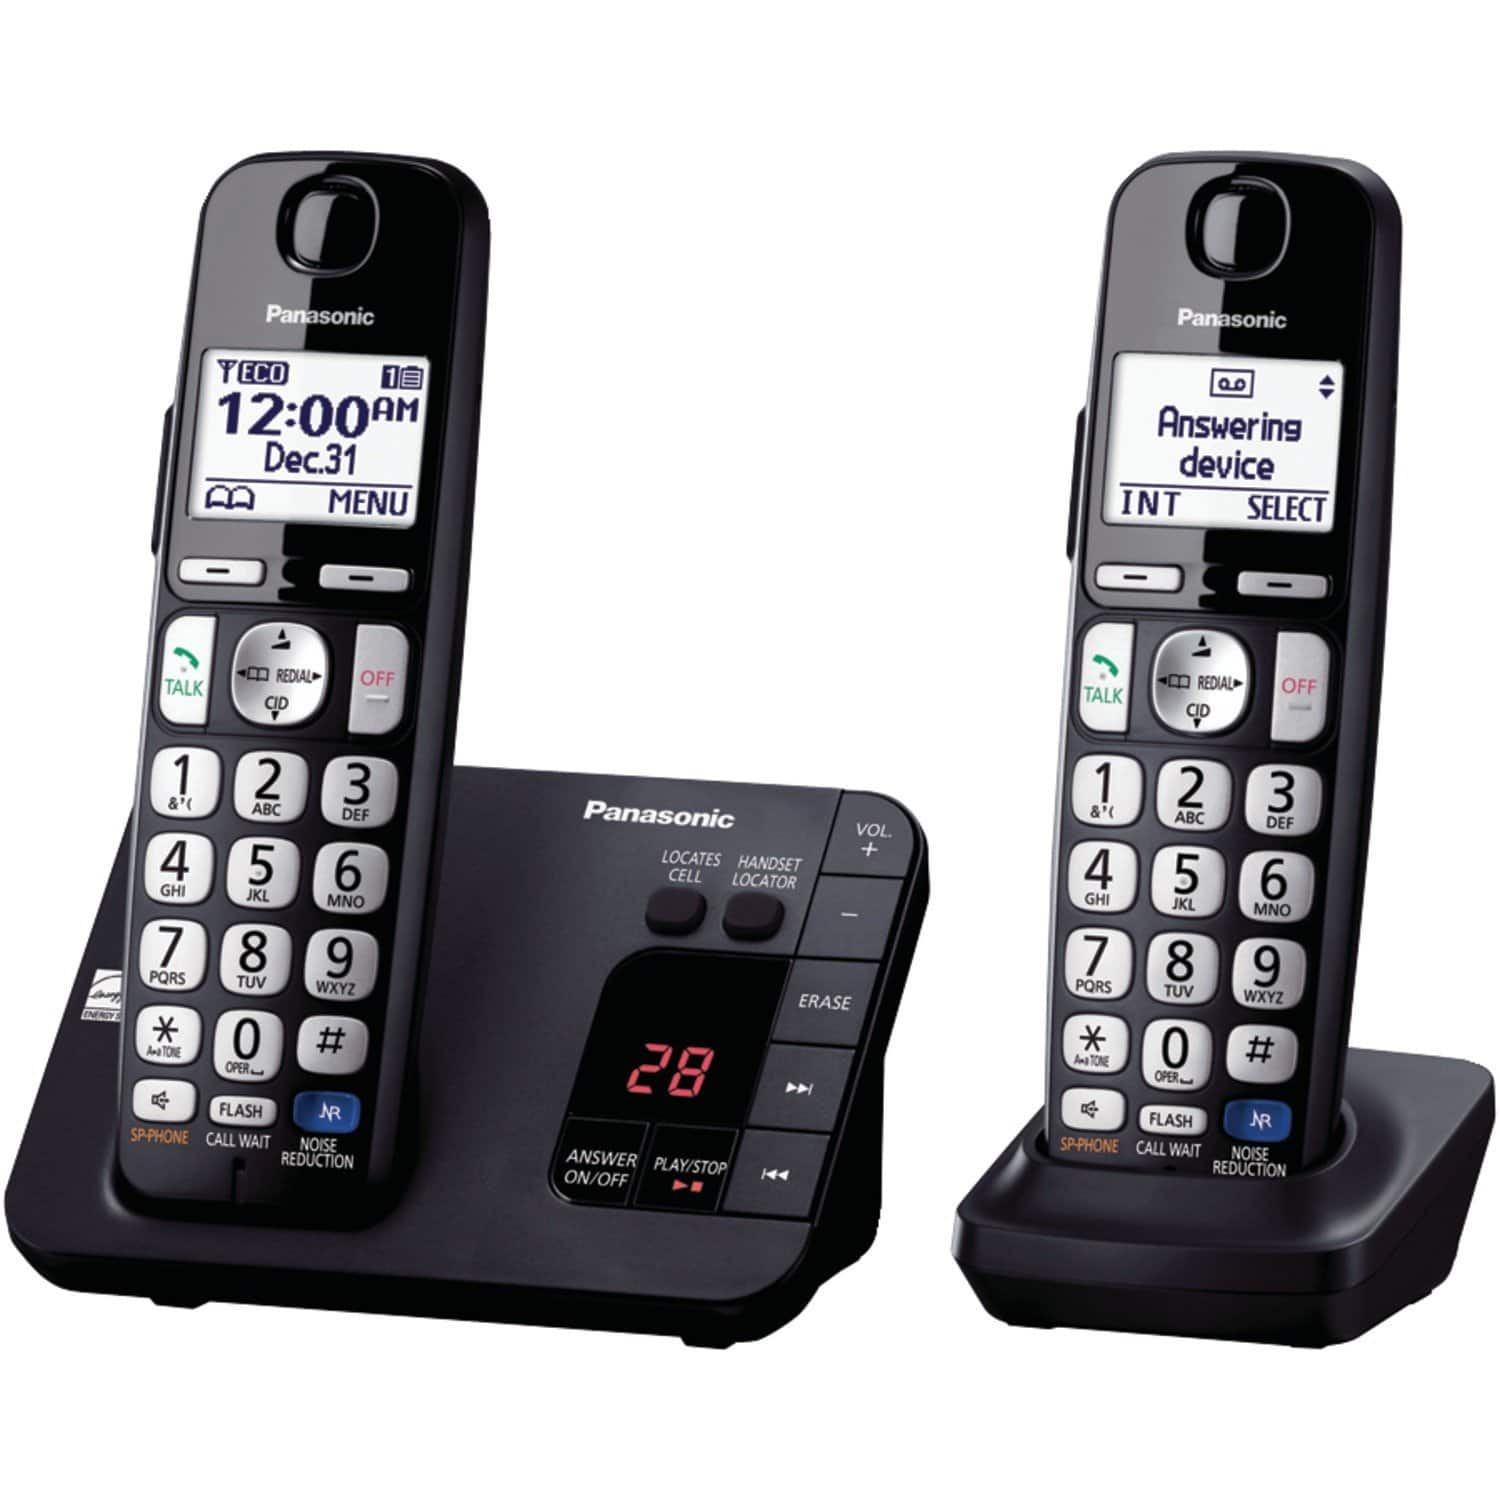 12/11 Panasoinc Deal of the Day-Save up to 40% on Panasonic Phones $44.95